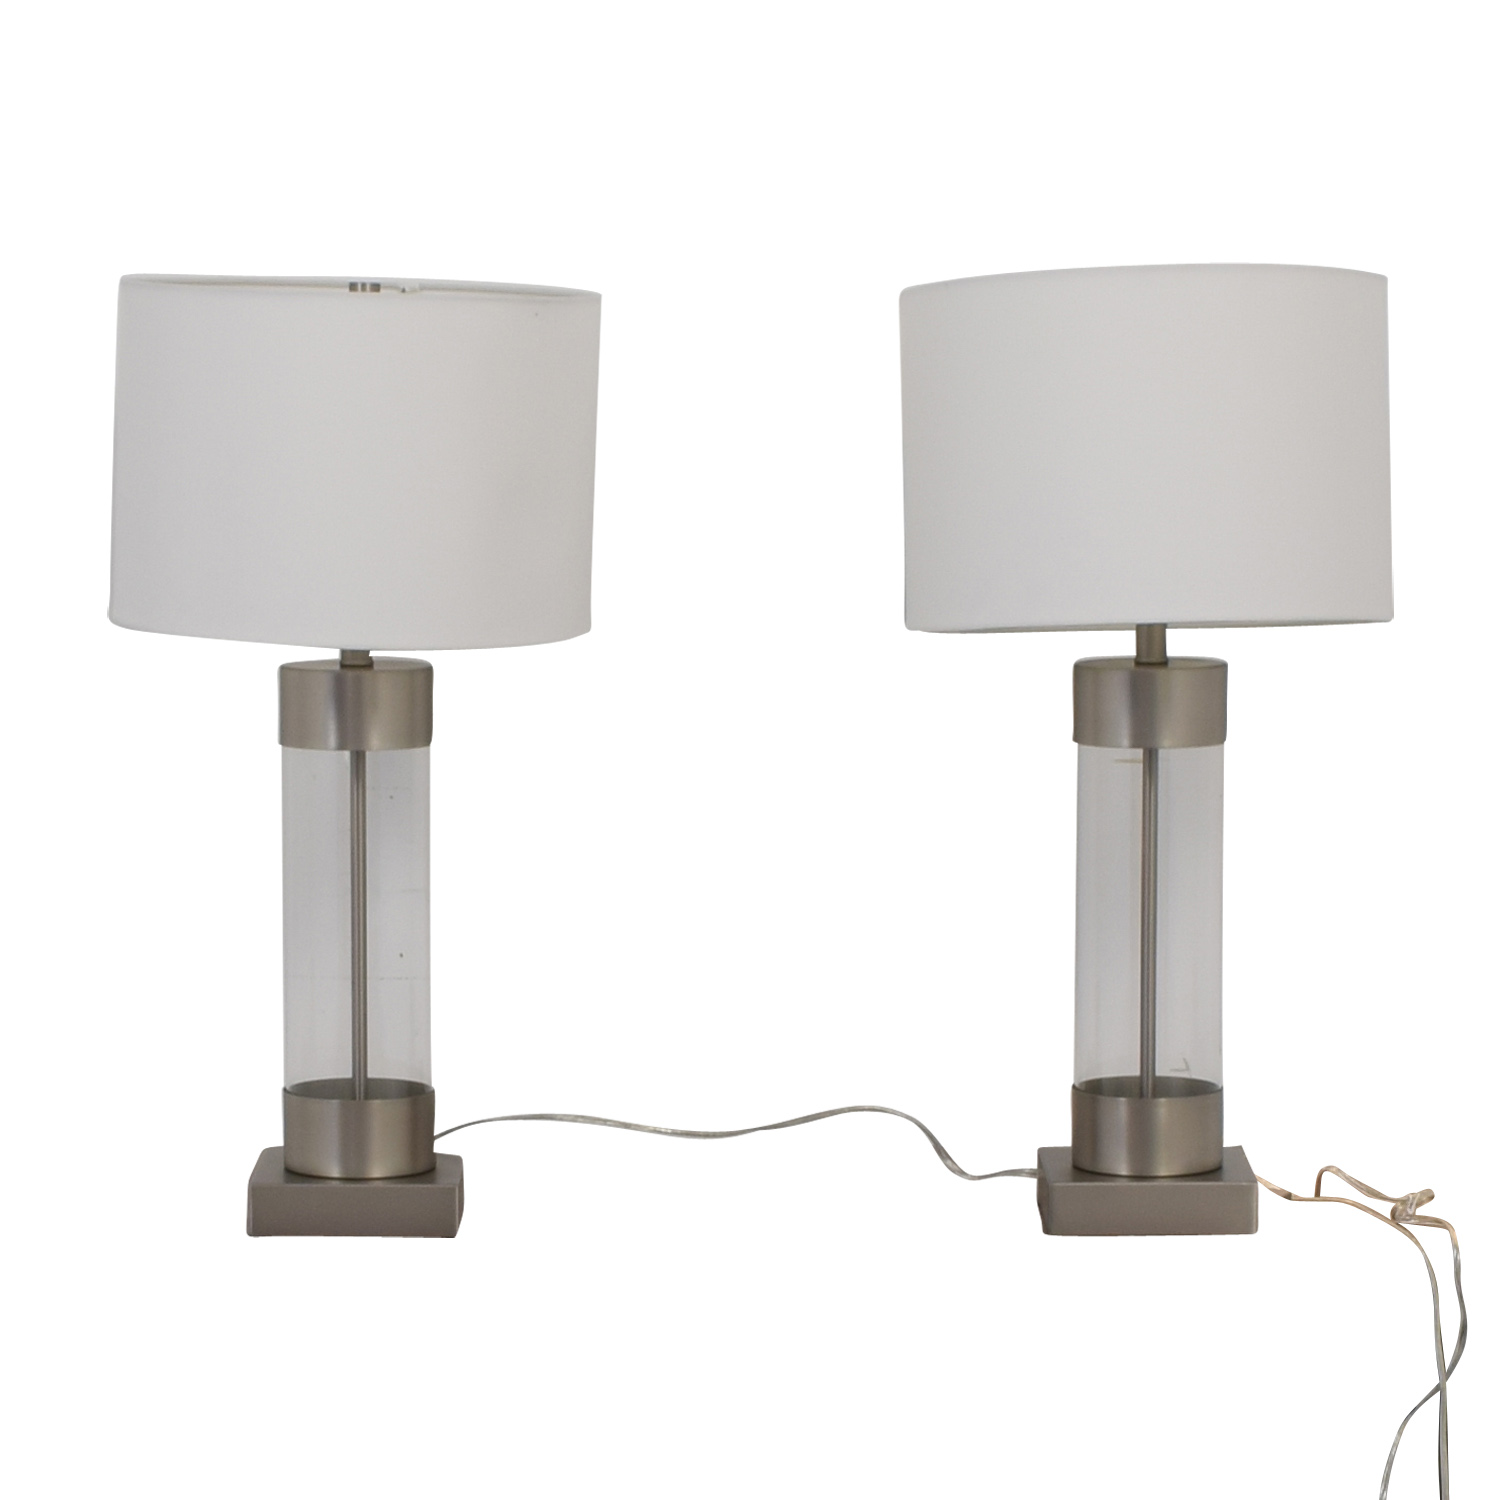 shop Crate & Barrel Avenue Table Lamps with USB port Crate & Barrel Lamps